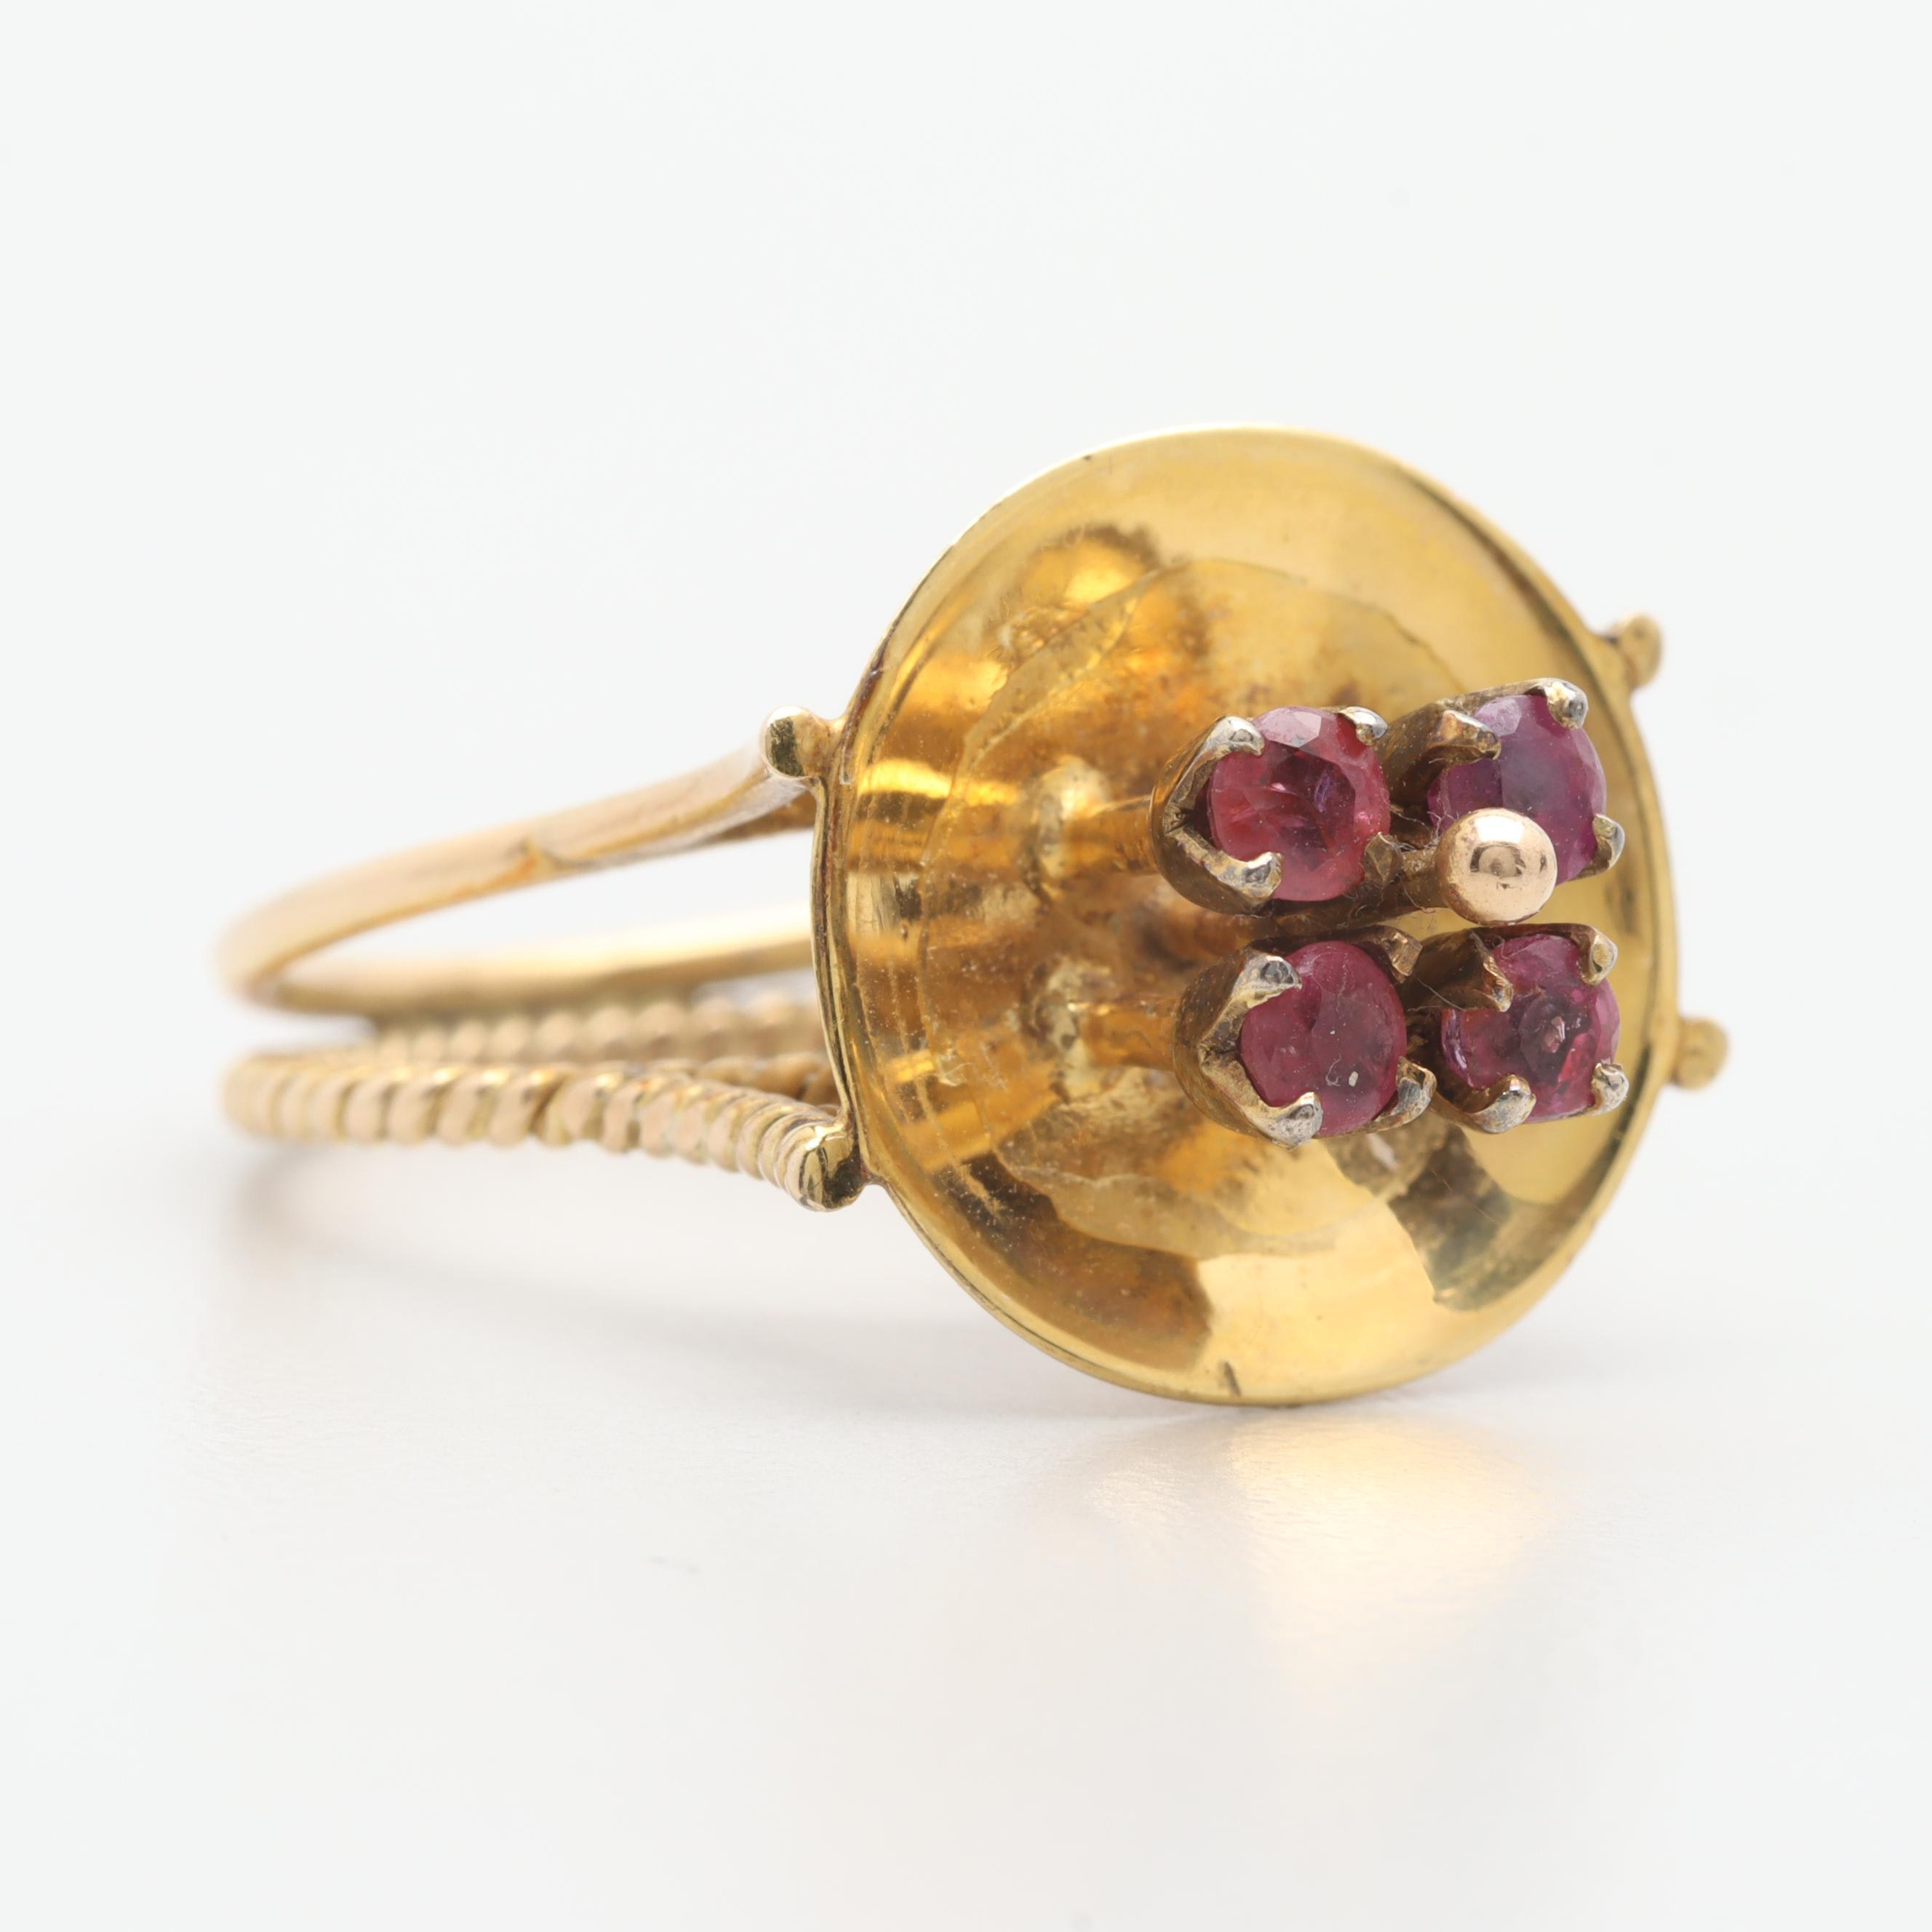 Vintage 14K Yellow Gold Ruby Ring